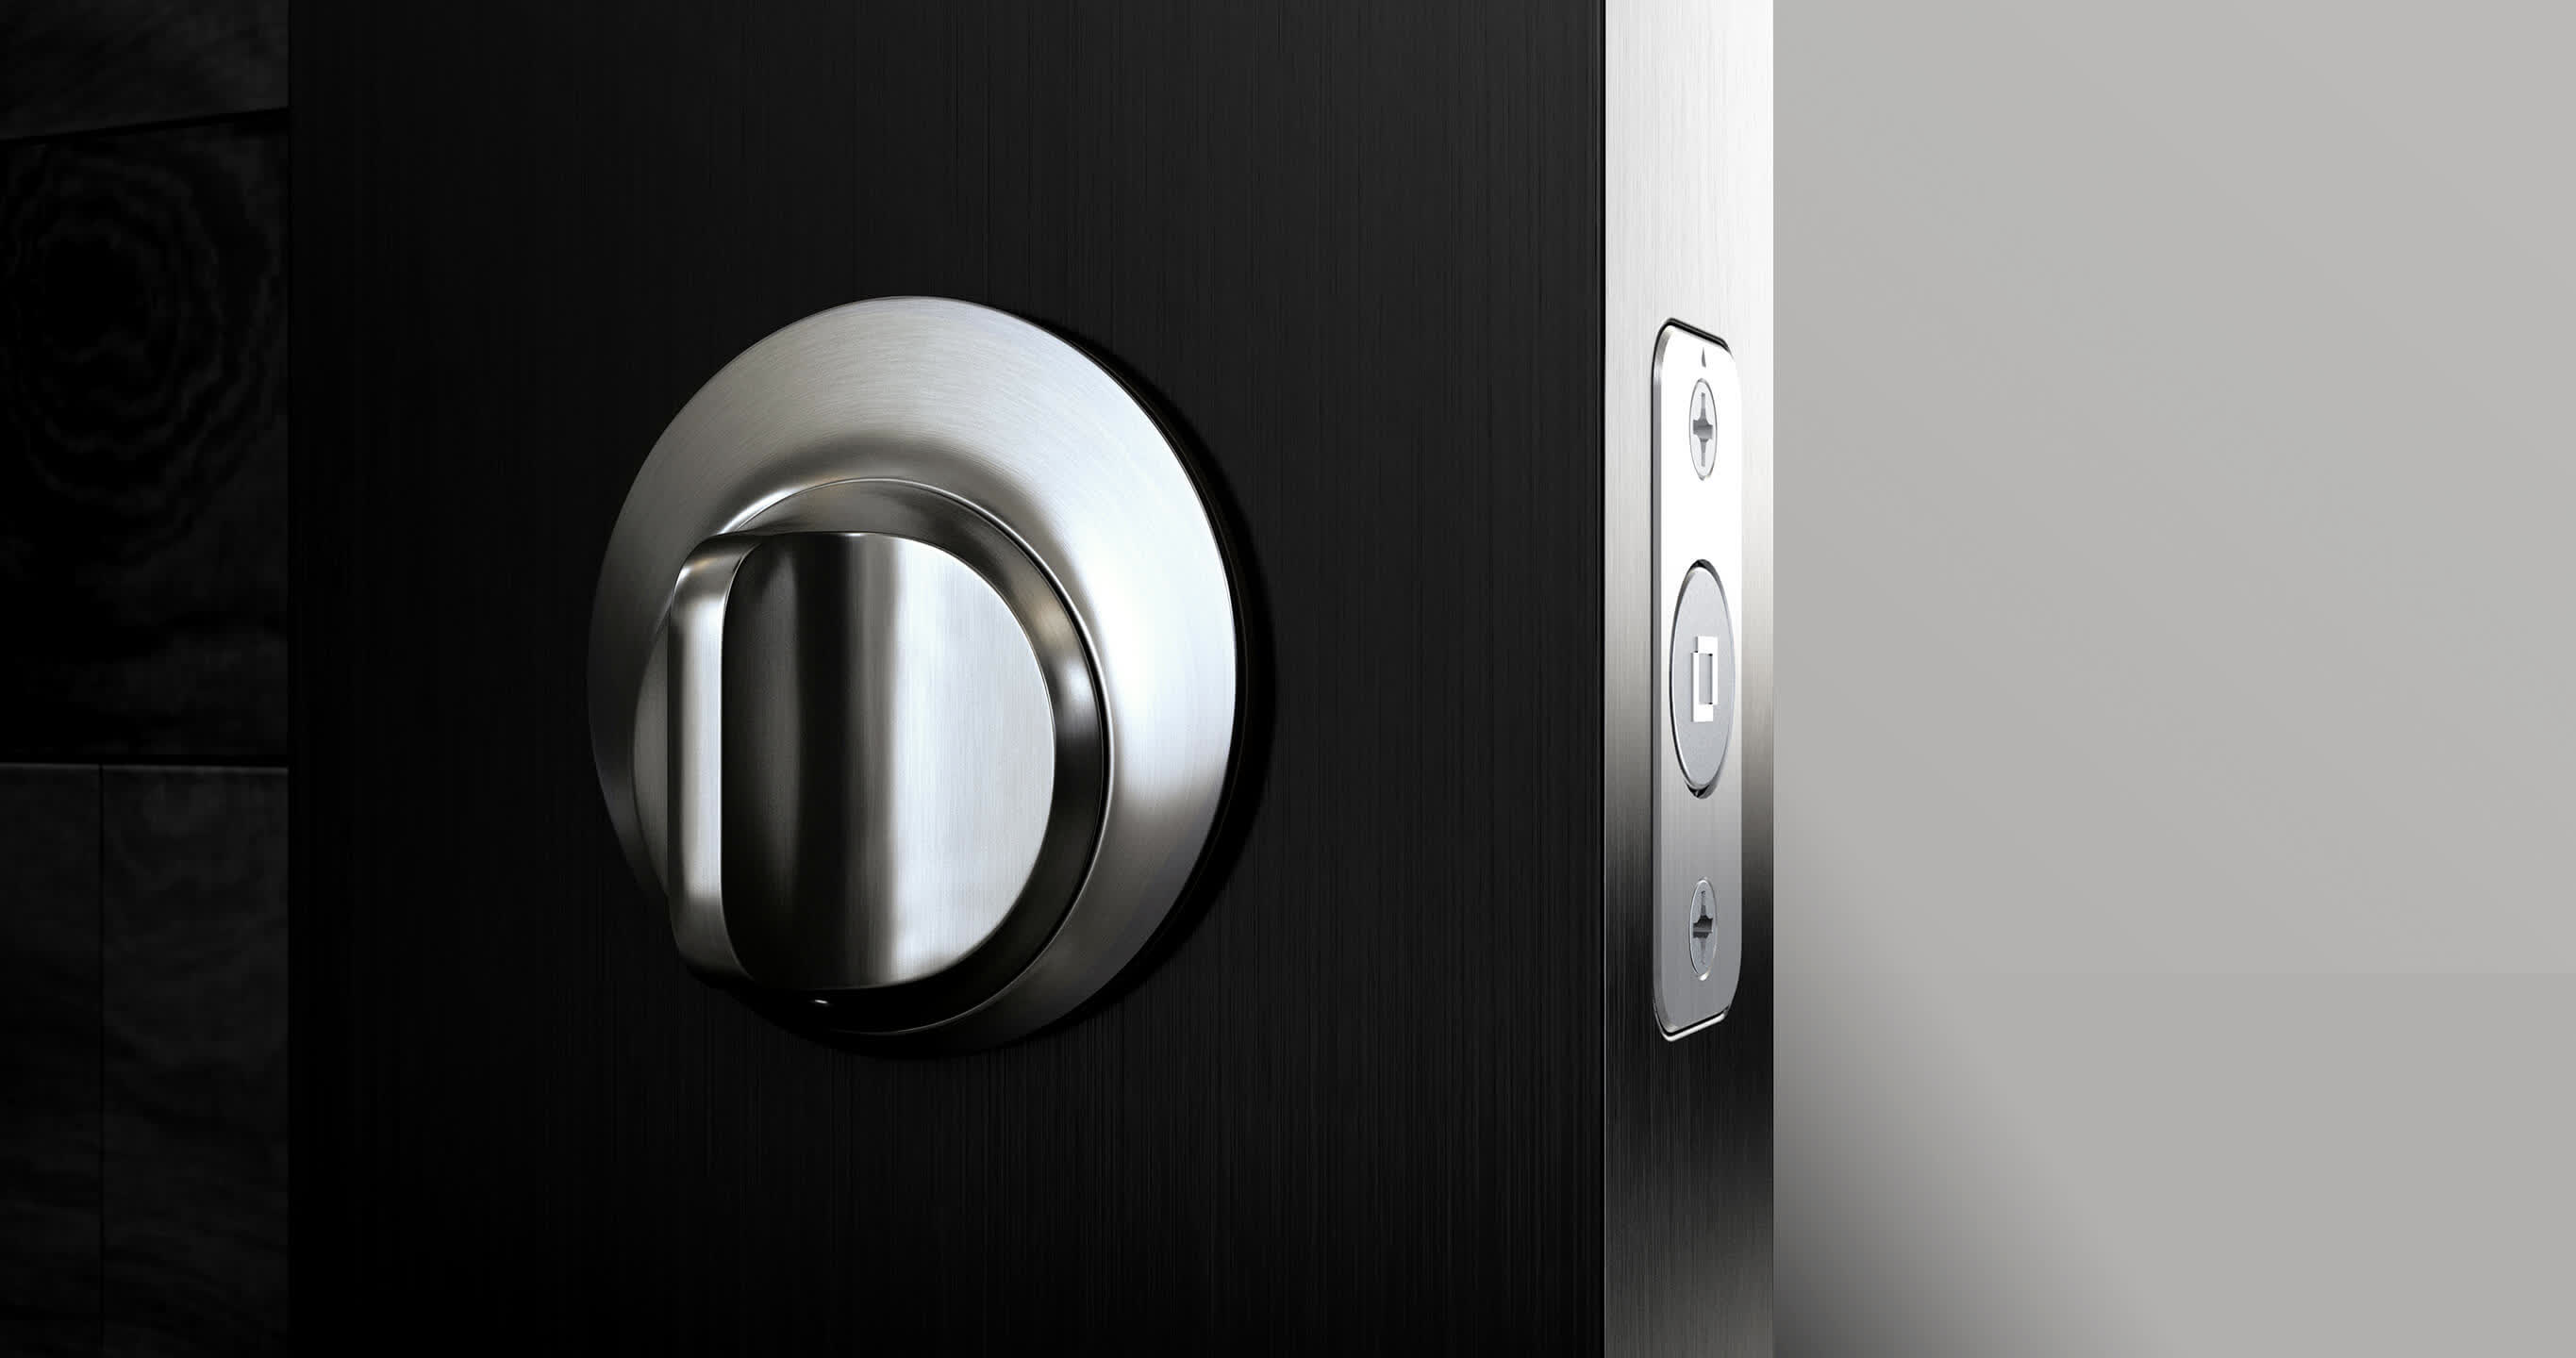 The Level Touch is a smart lock in a timeless design